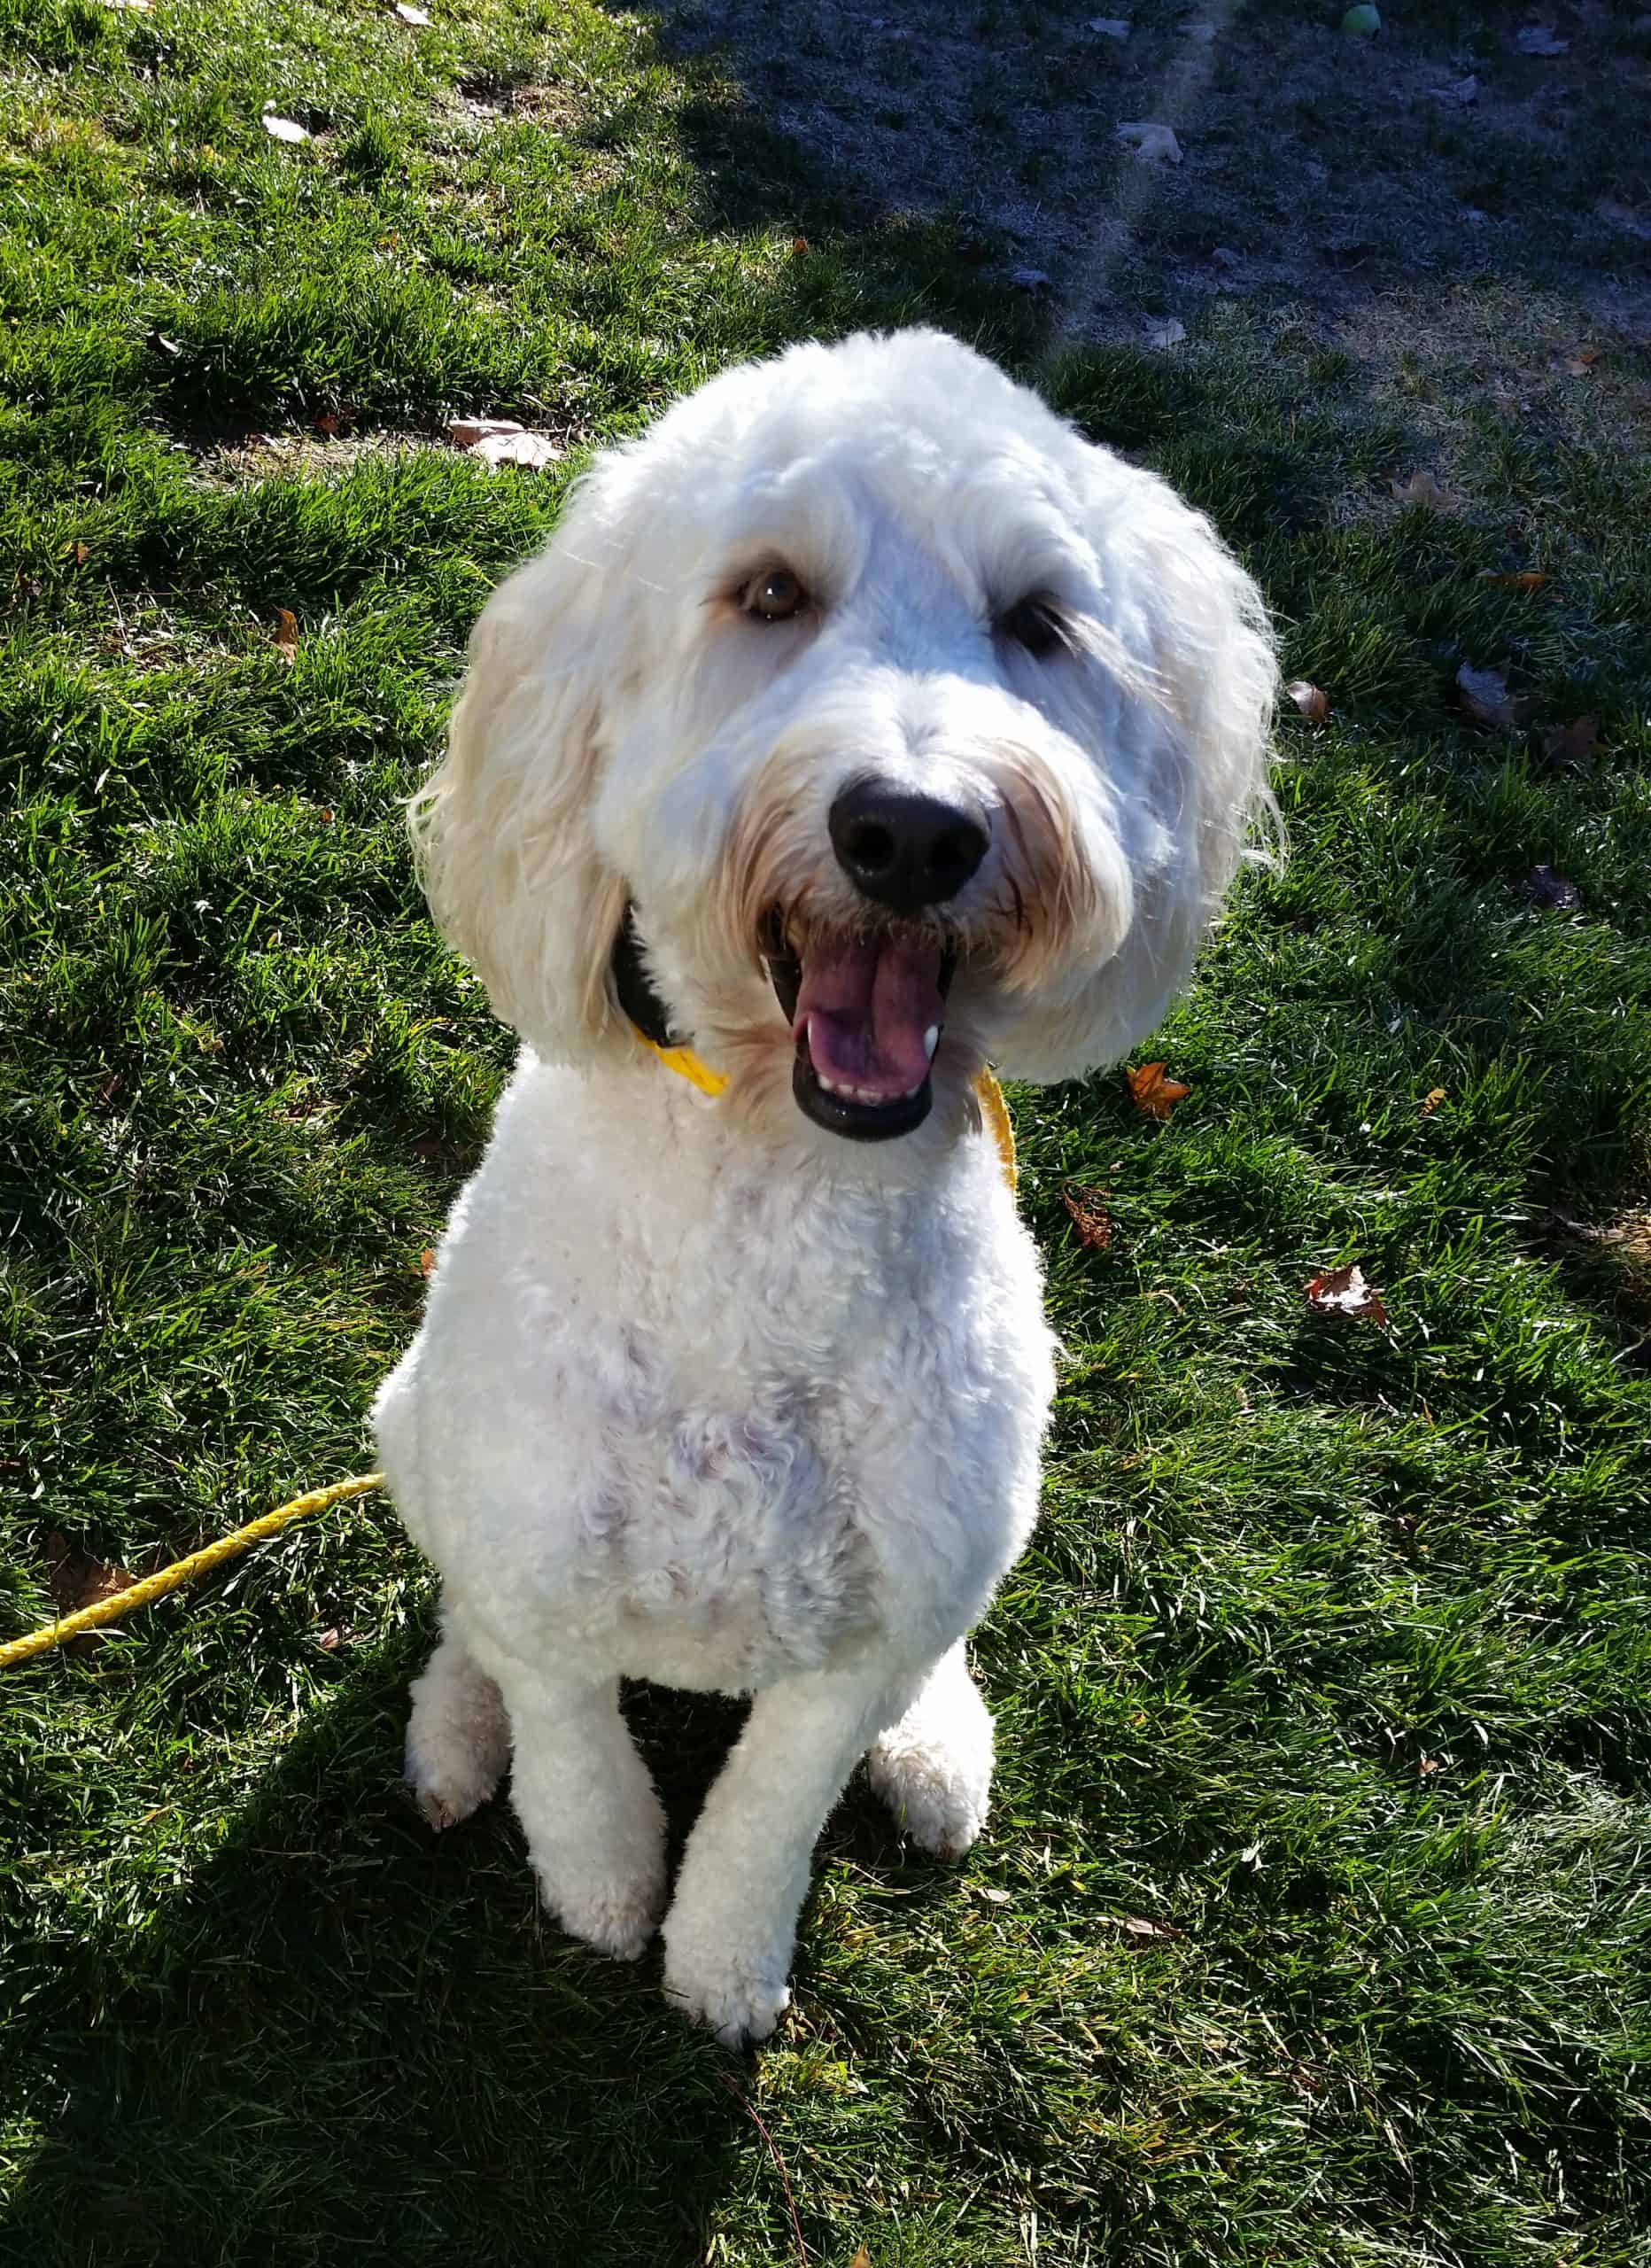 Buddy the Goldendoodle